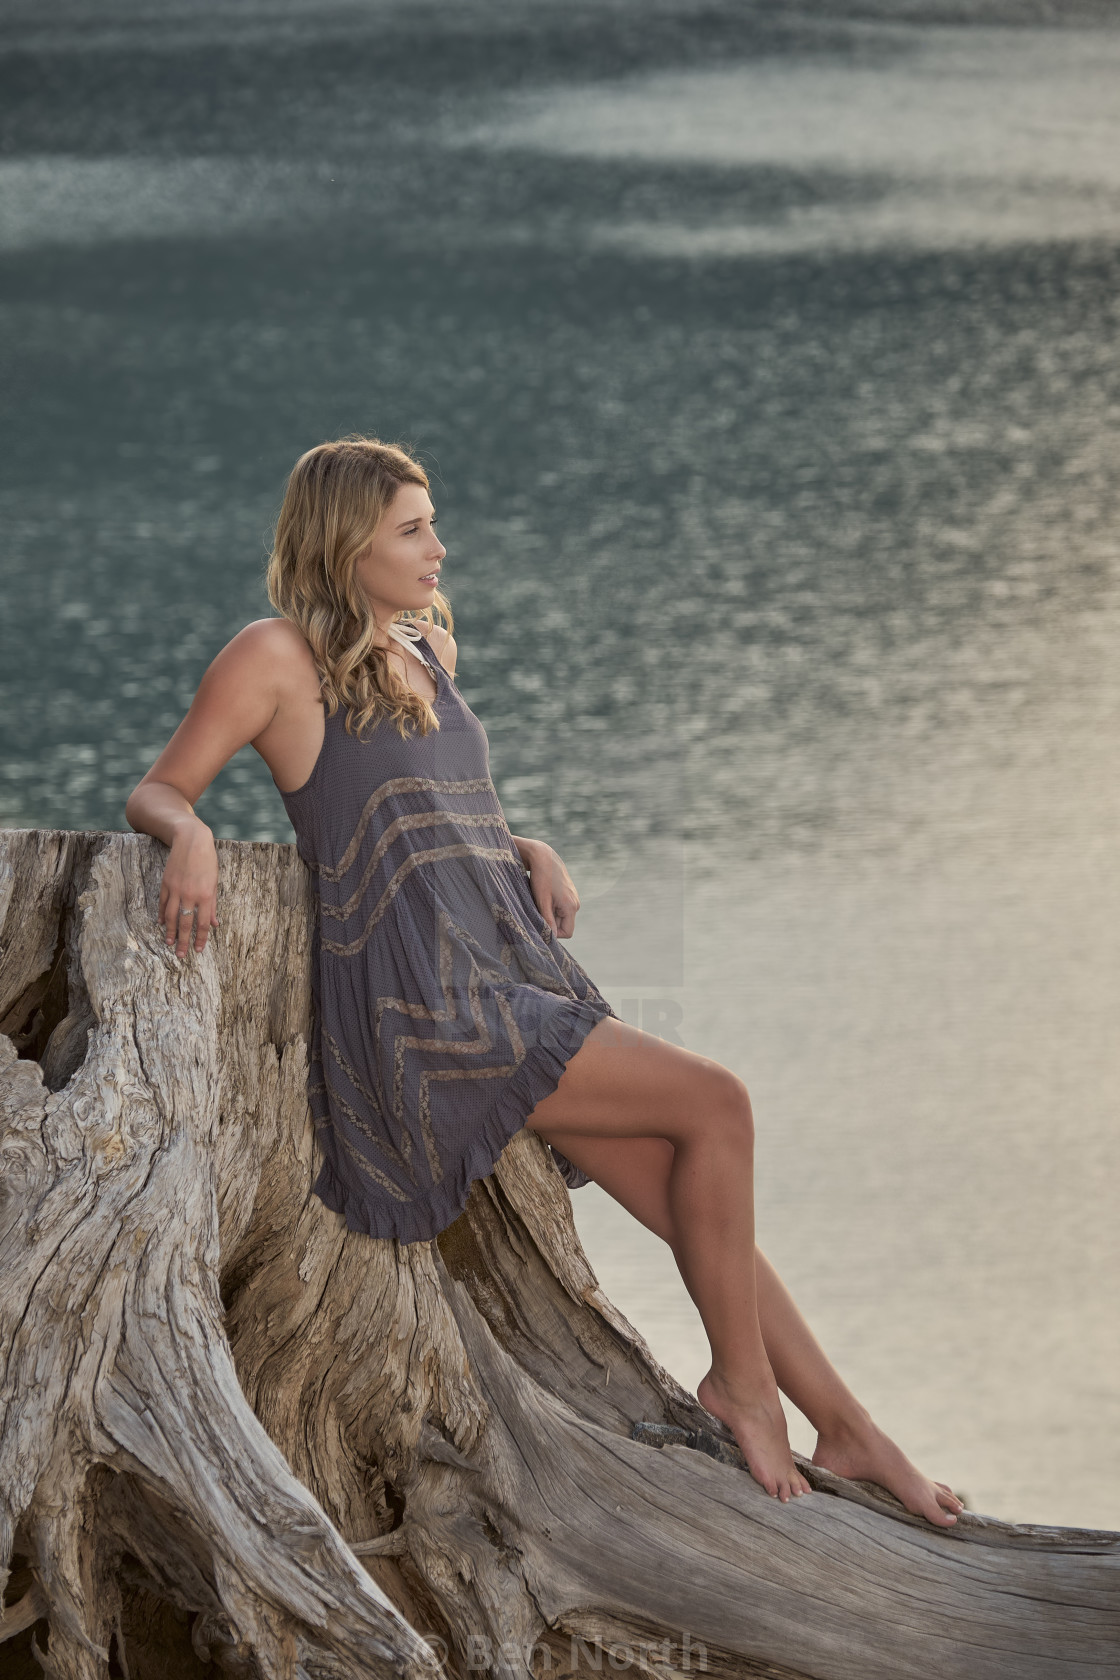 """""""A Young Barefoot Woman in a Slip Relaxing on a Tree Stump Next to a Lake"""" stock image"""